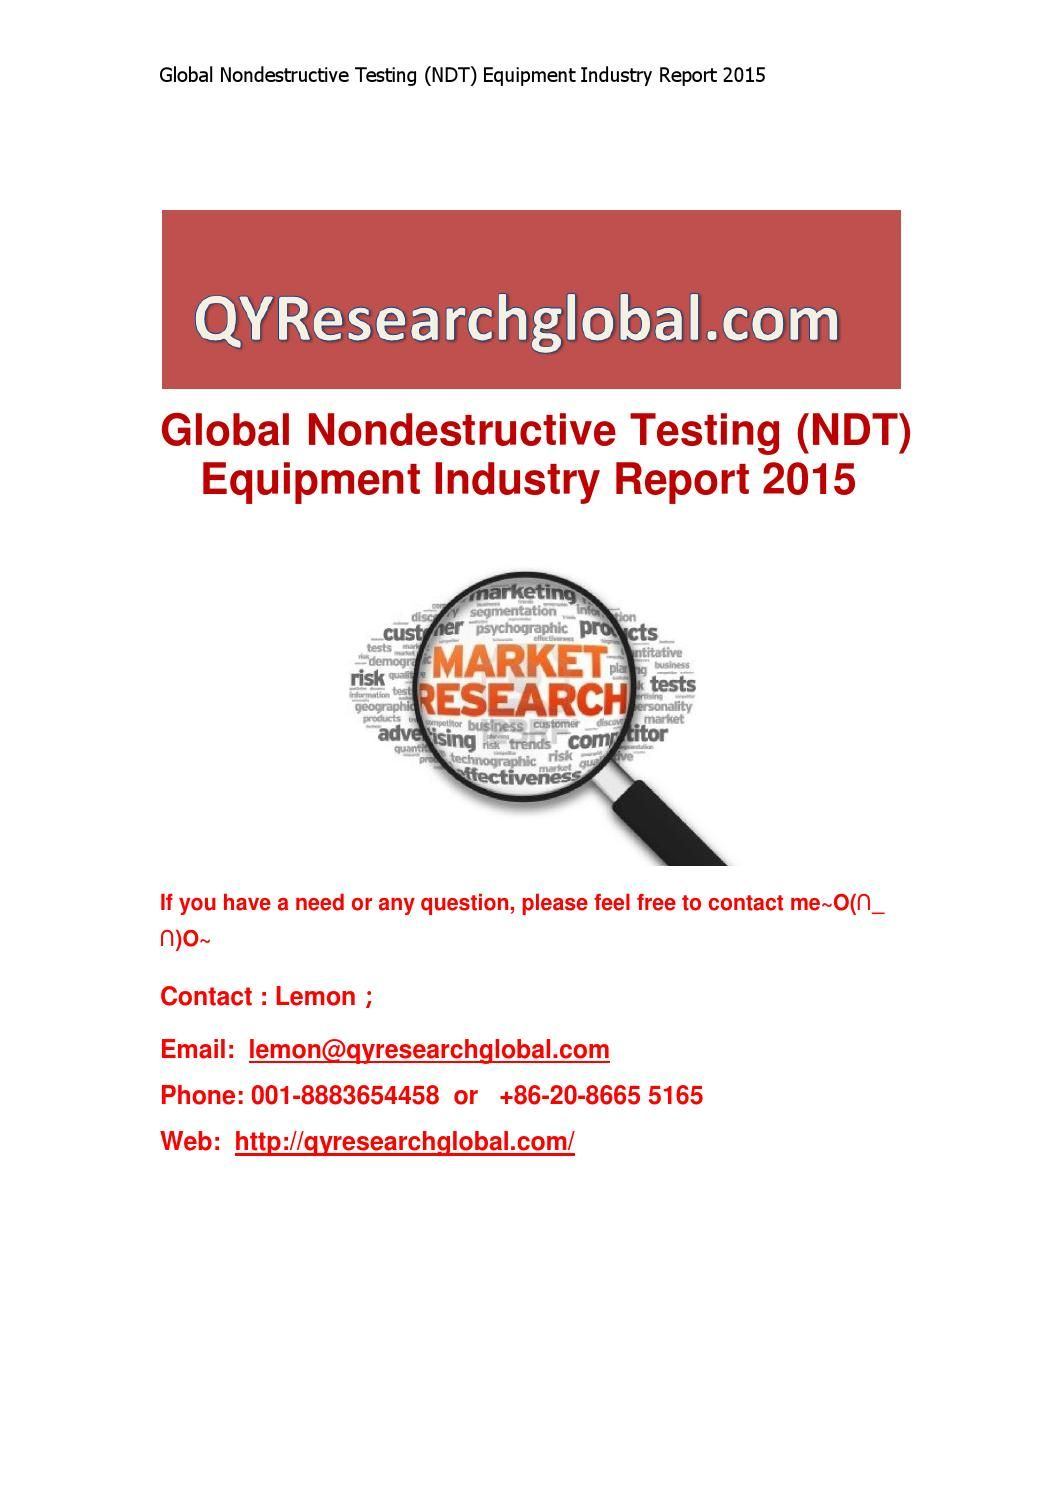 Global nondestructive testing (ndt) equipment industry report 2015